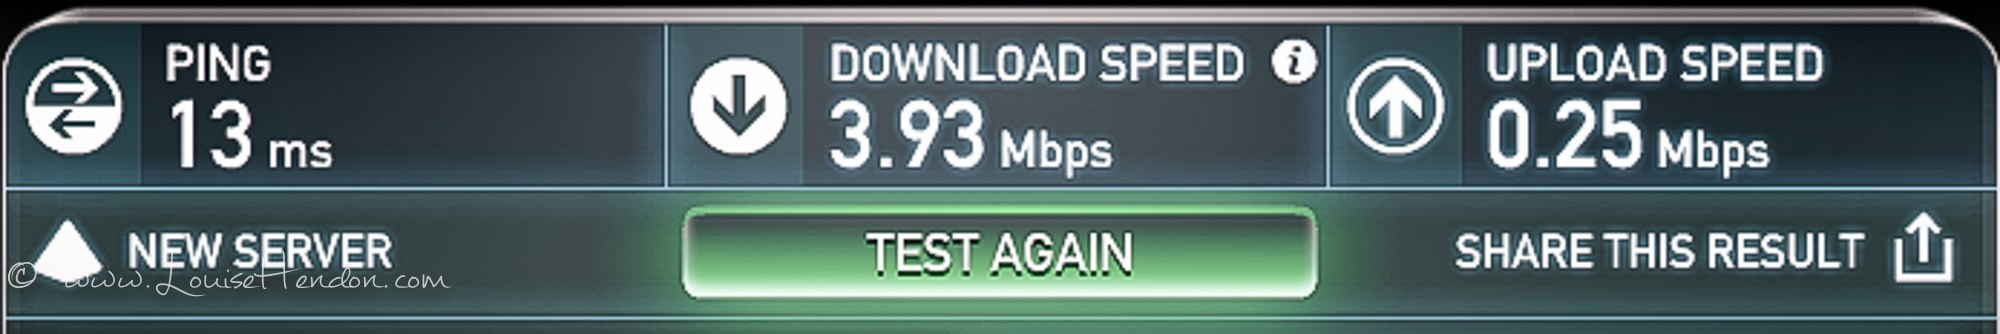 cafe de l'amour chiang mai thailand internet wifi speed test